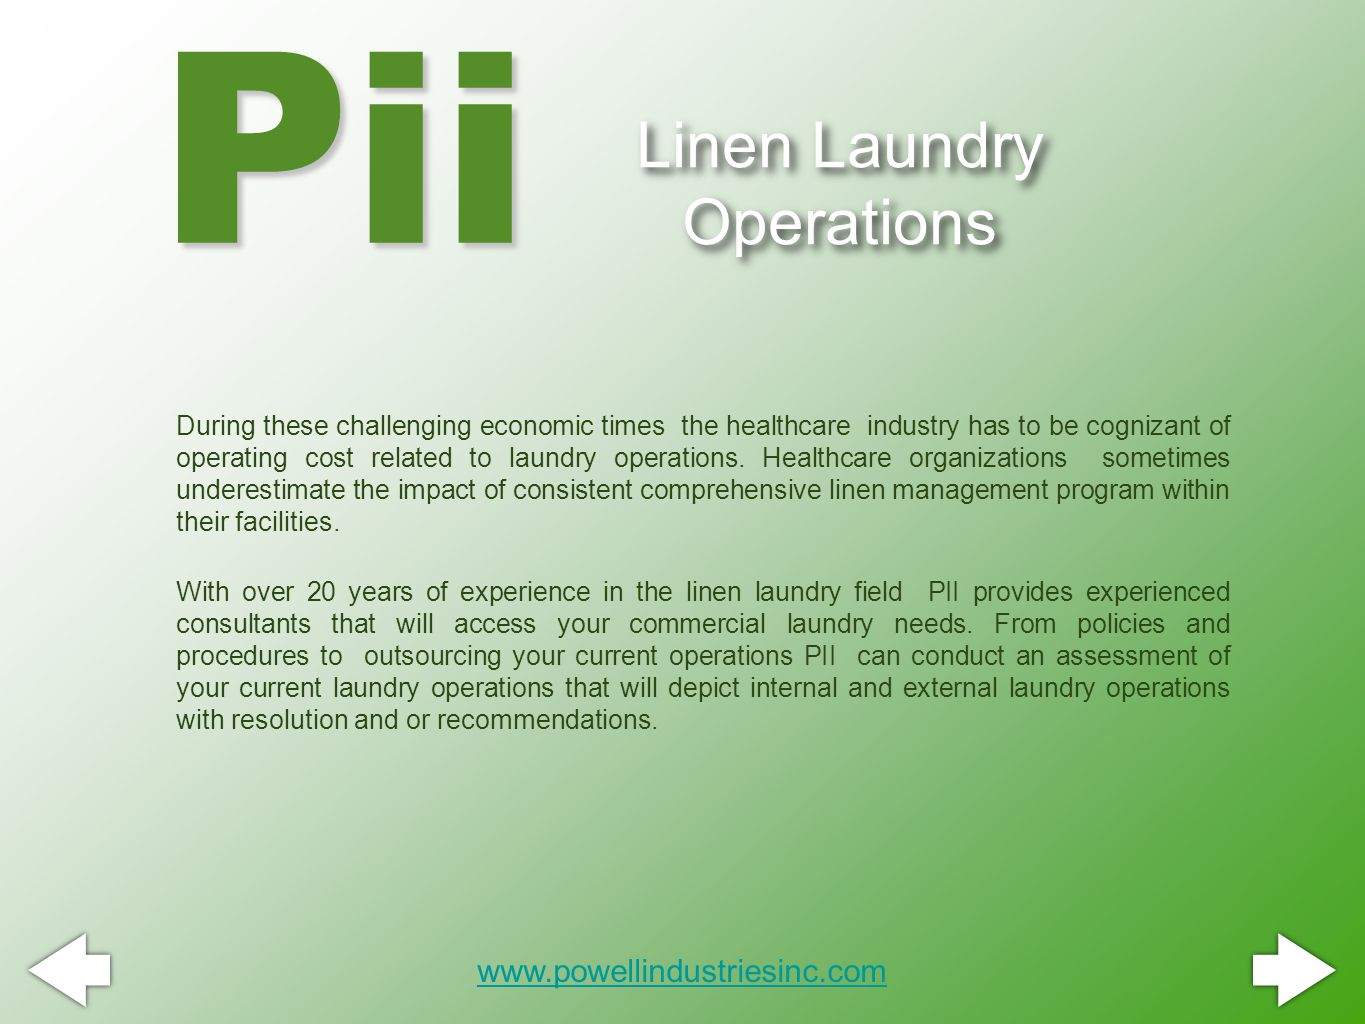 Linen Laundry Operations During these challenging economic times the healthcare industry has to be cognizant of operating cost related to laundry operations.